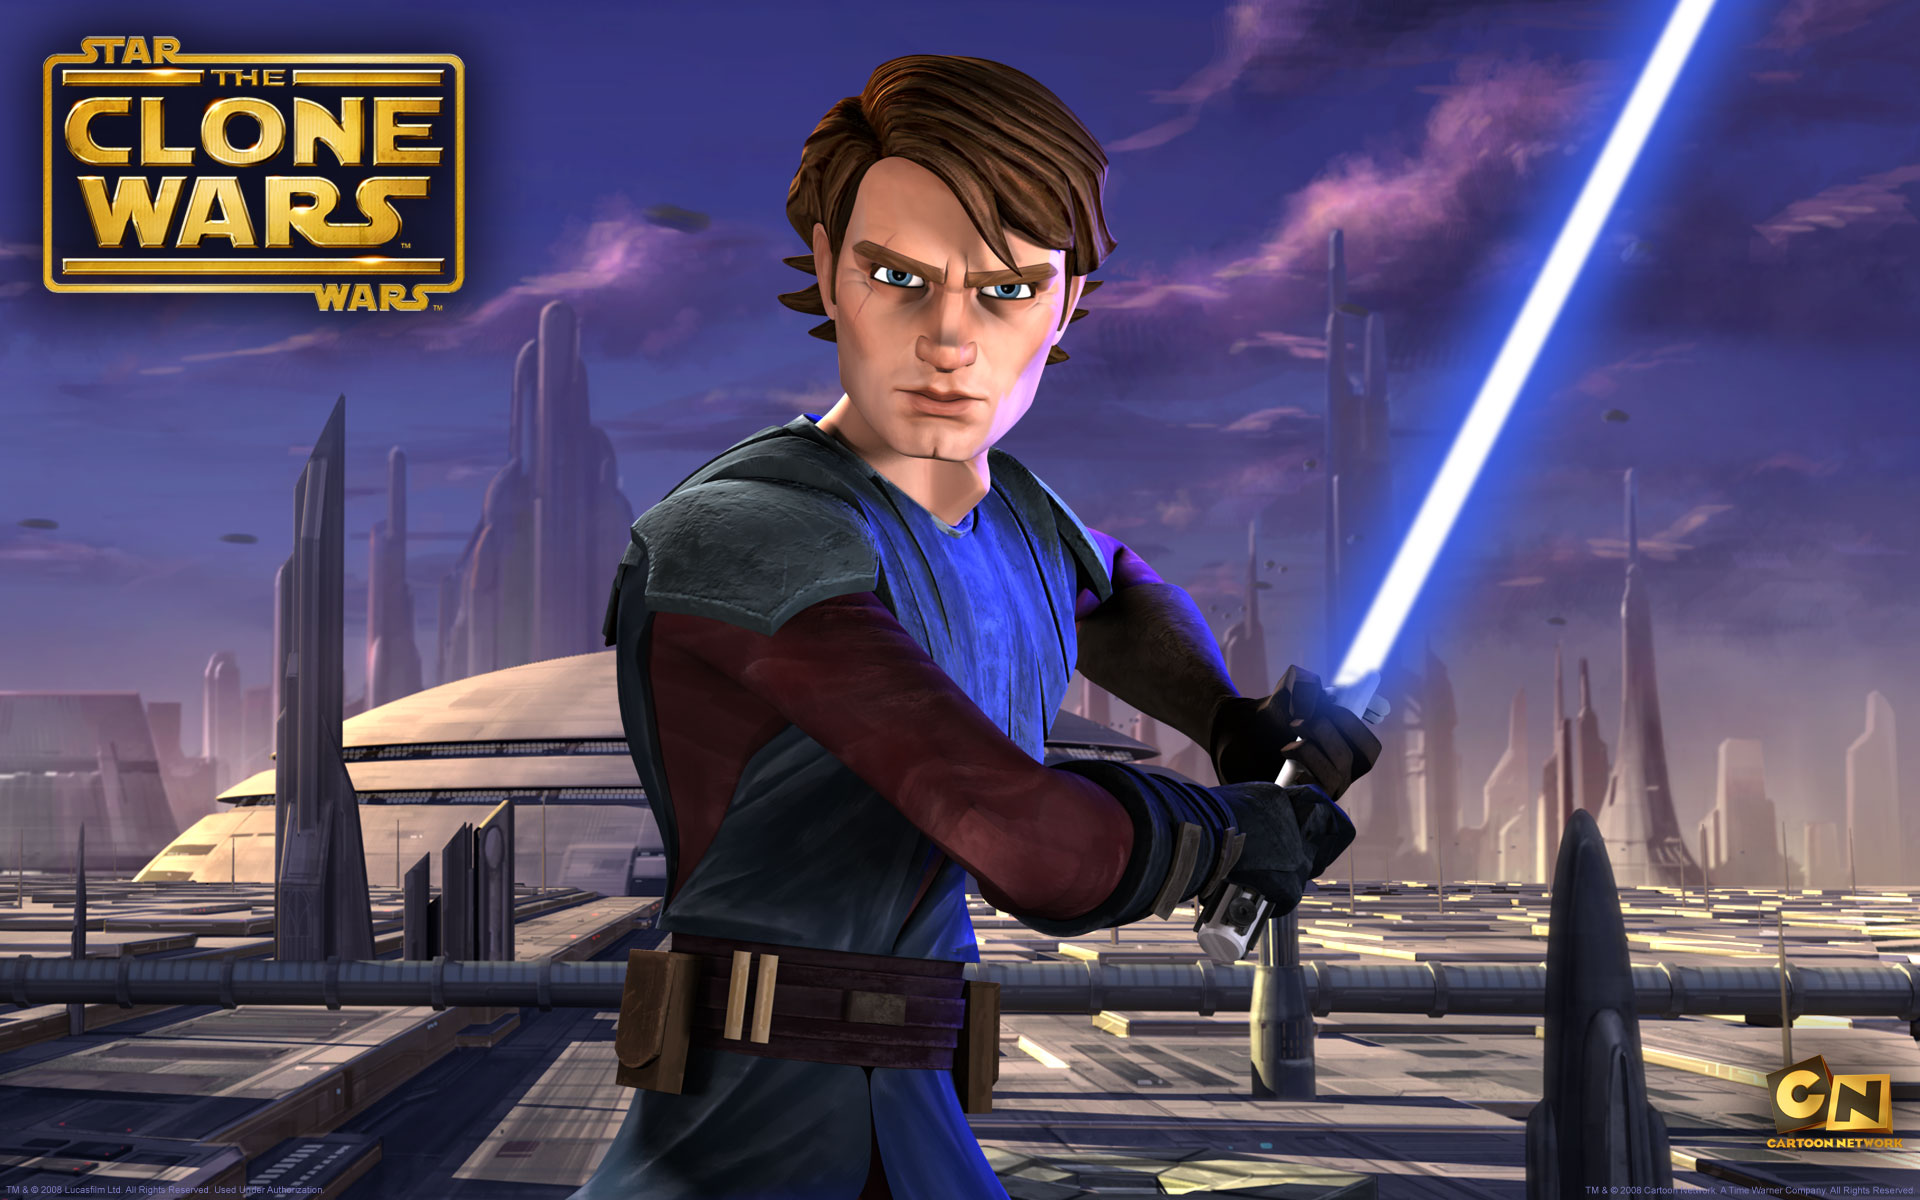 Star Wars The Clone Anakin Skywalker Wallpaper